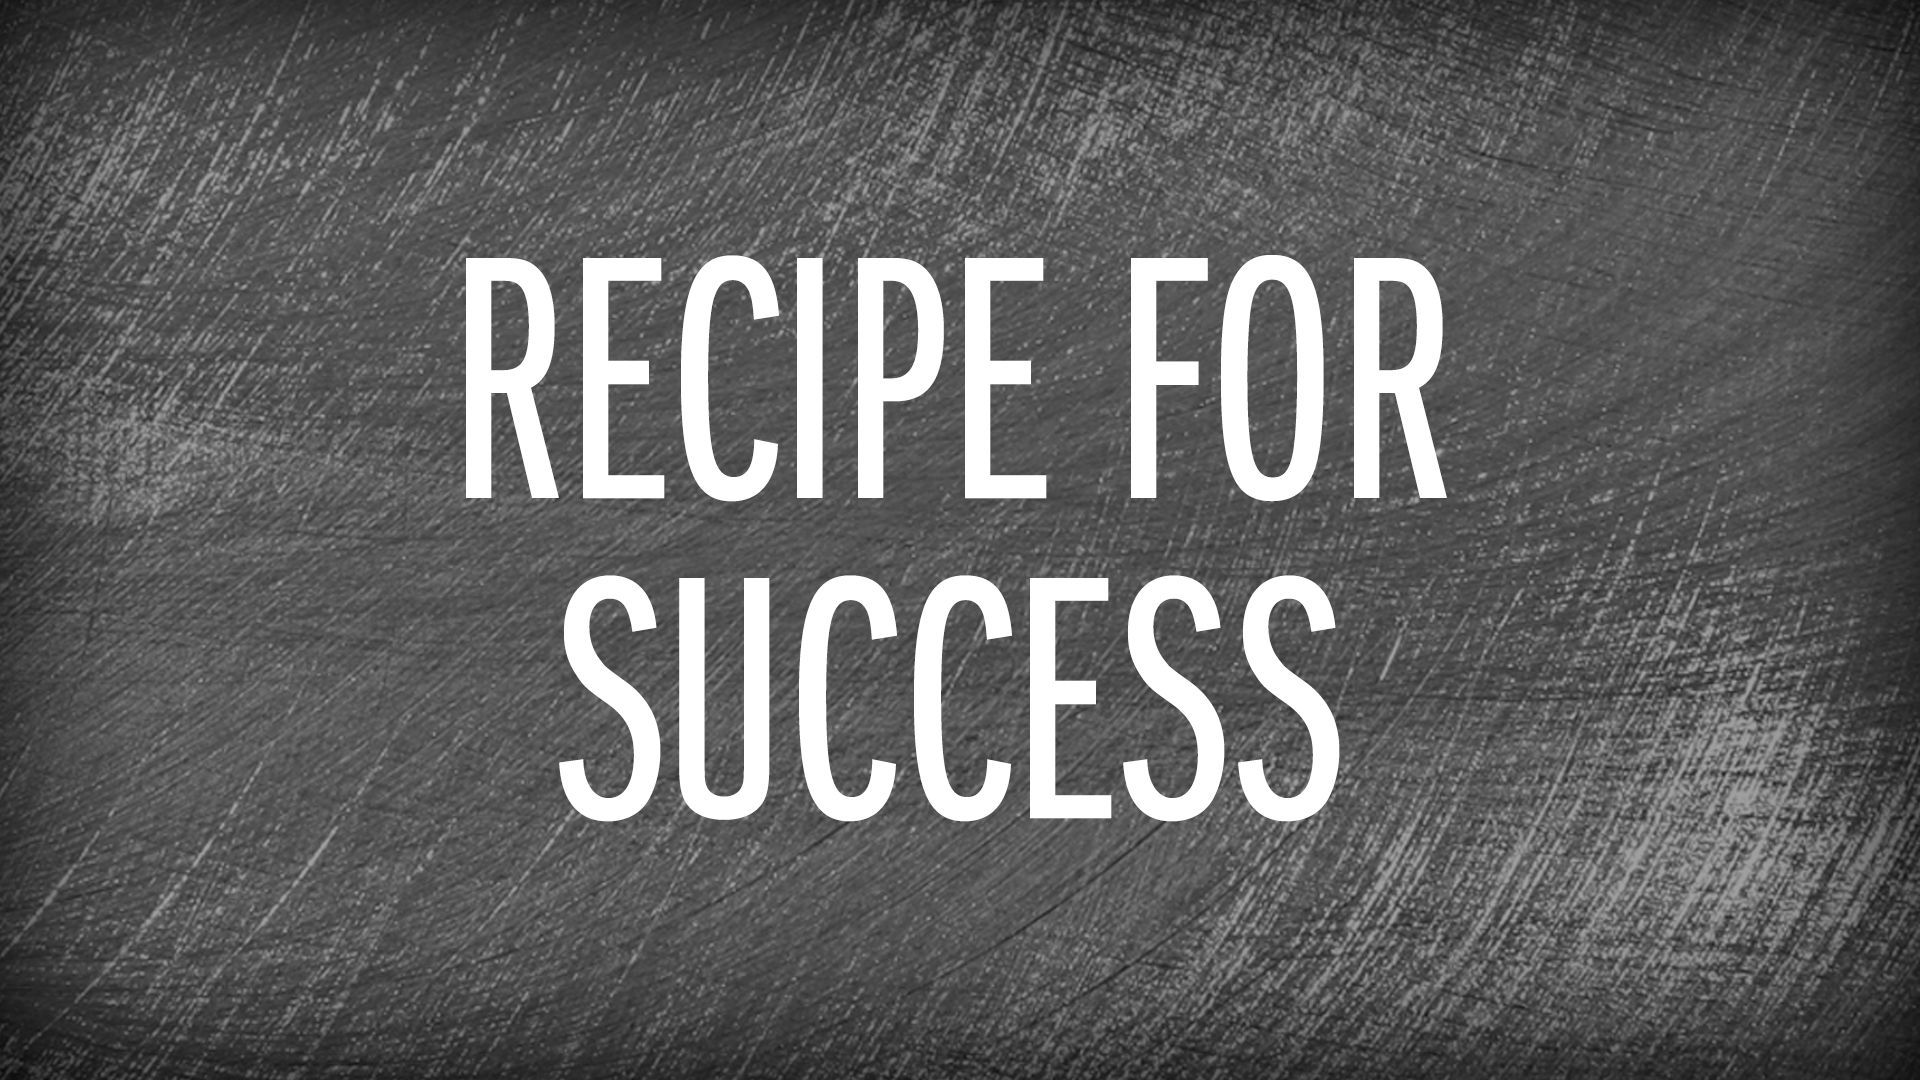 FN-ShowLogo-RecipeForSuccess-1920x1080